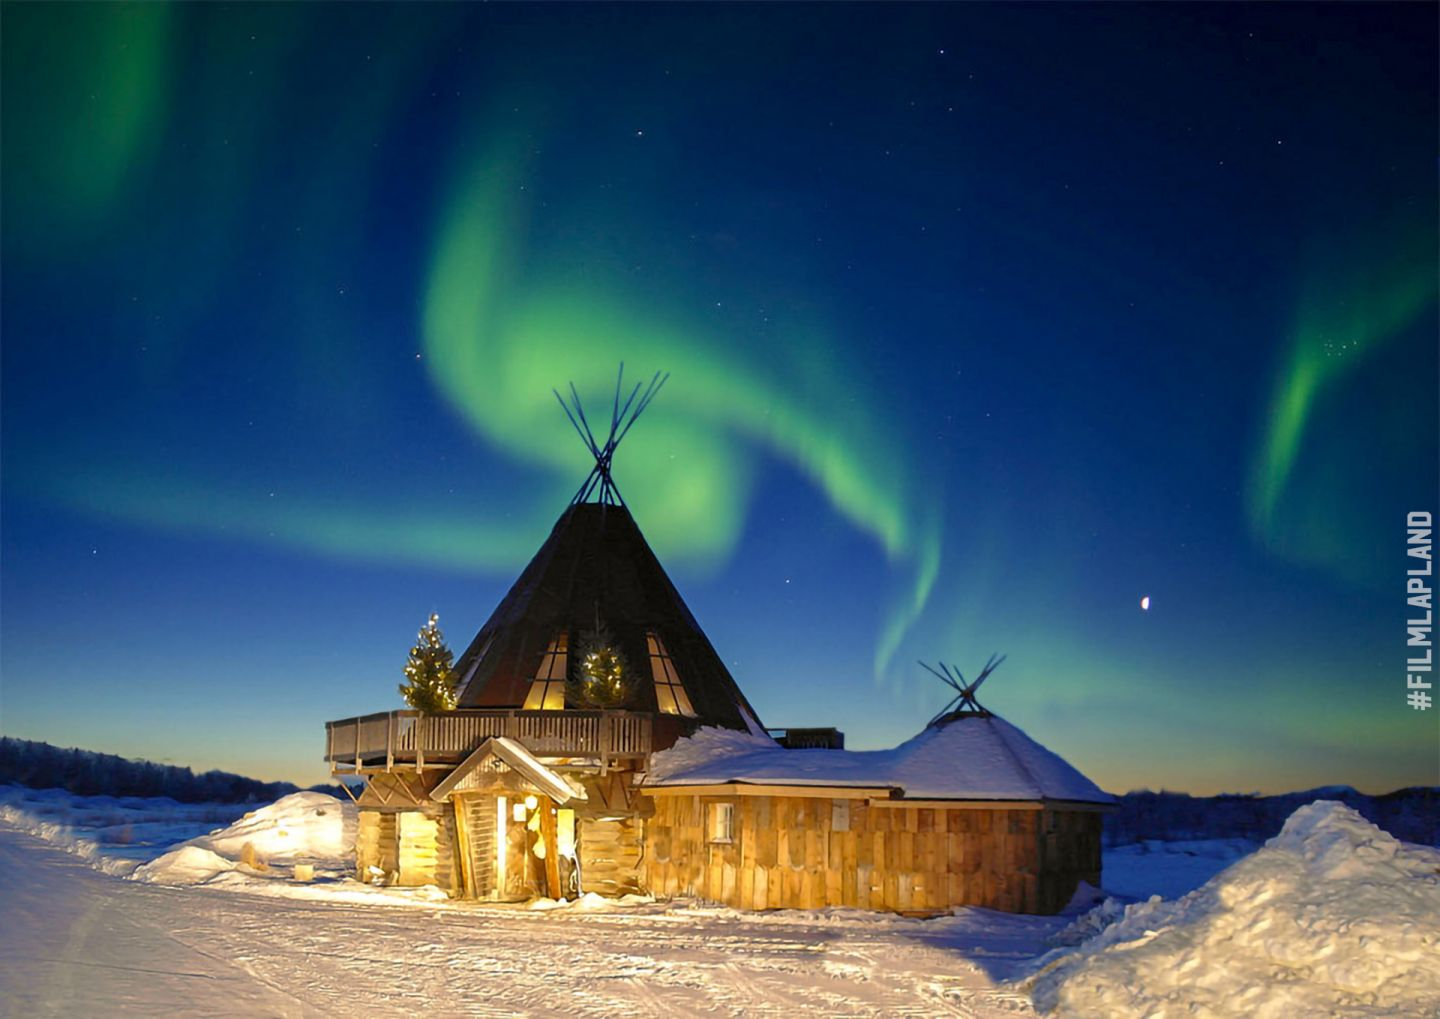 Northern Lights over a frosty hut in Levi, Finland